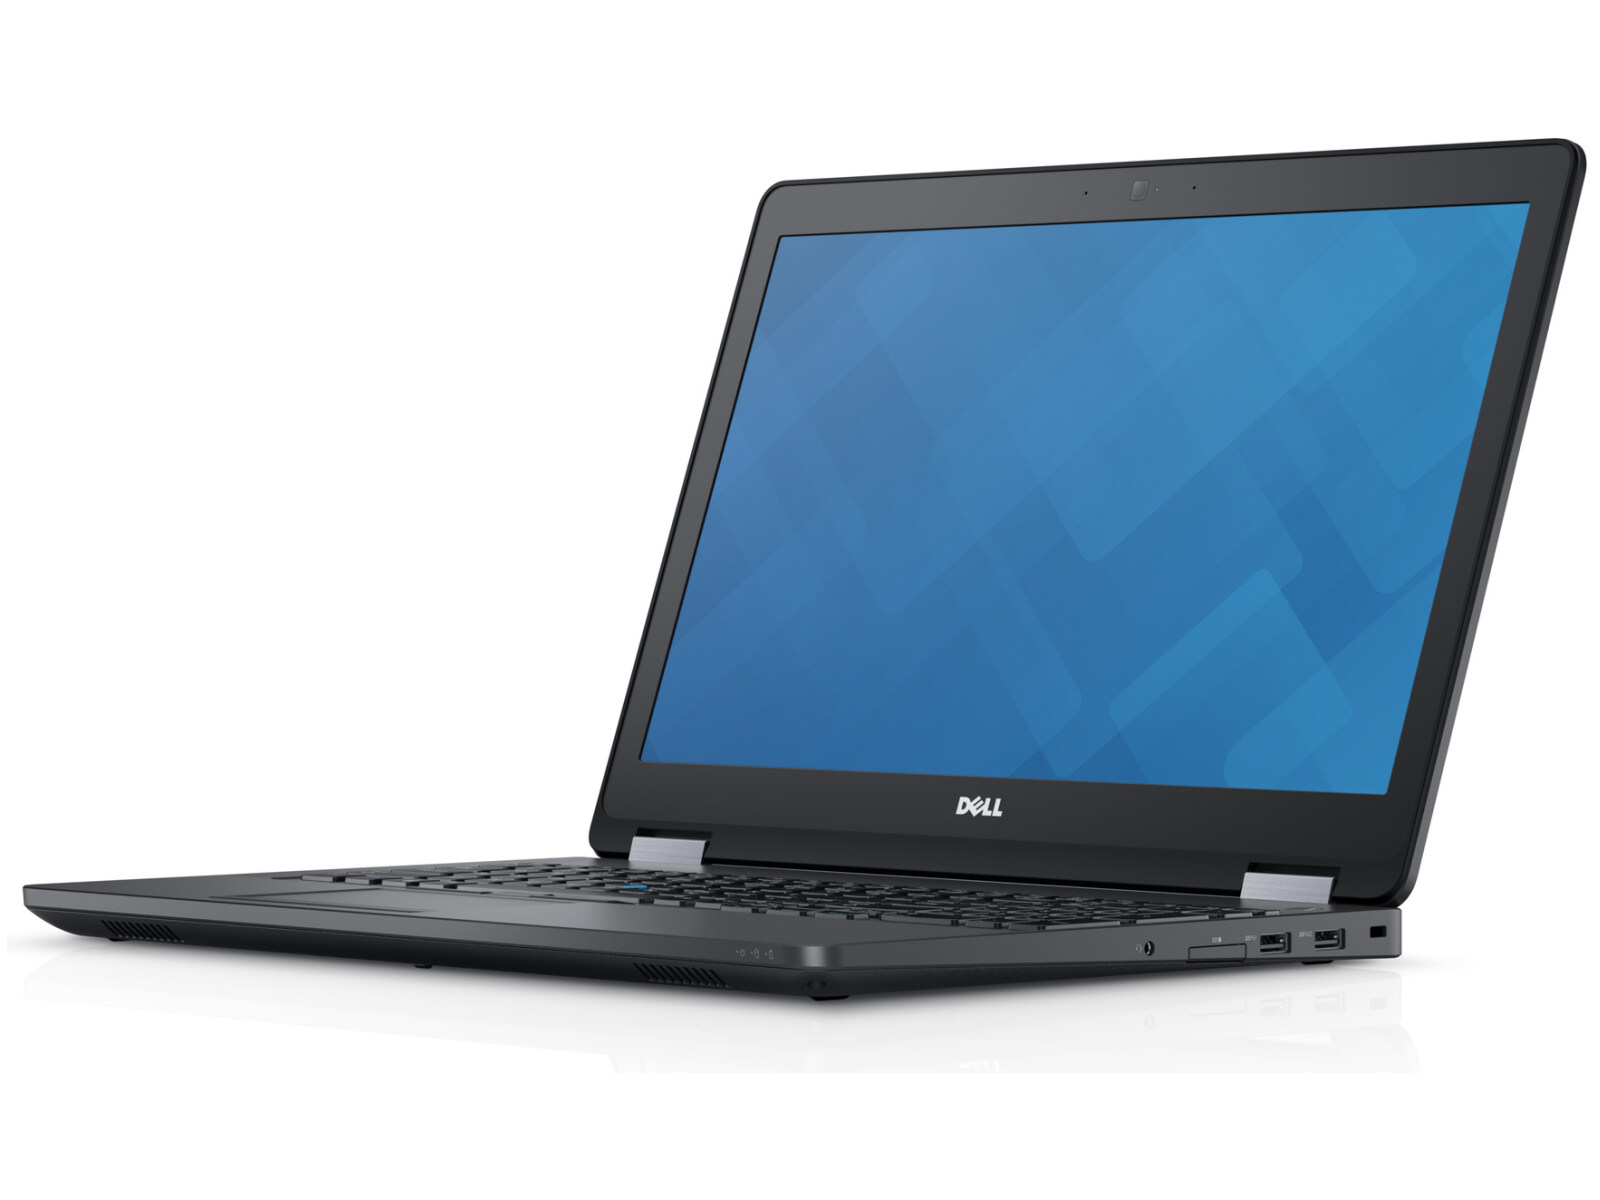 Dell Latitude E5570 Core i5-6200u/Ram 8gb/Hdd 500gb (REFURBISHED) Malaysia